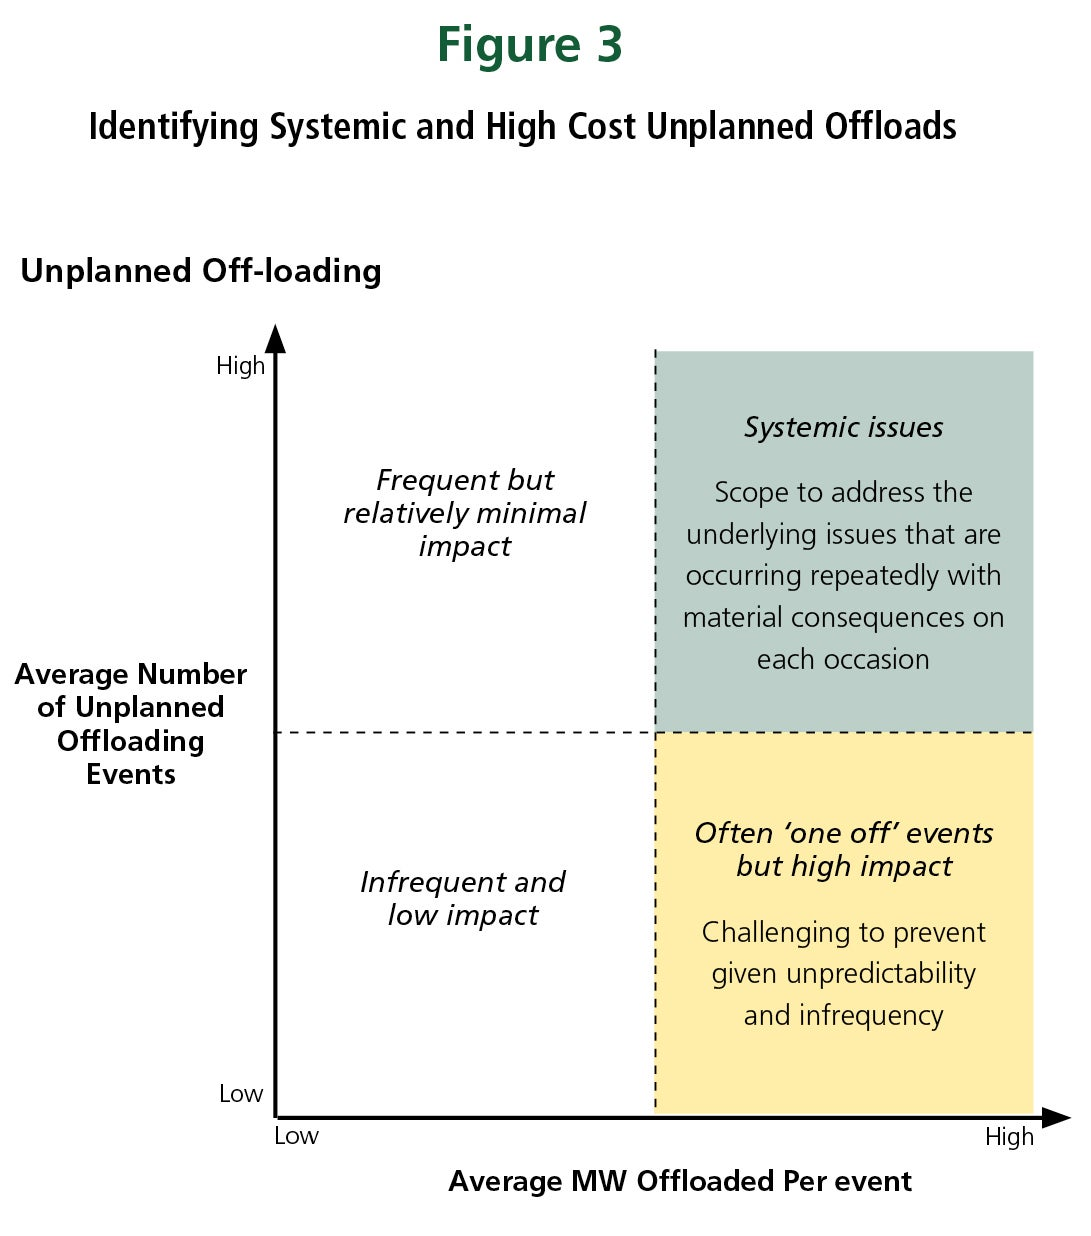 Identifying Systemic and High Cost Unplanned Offloads